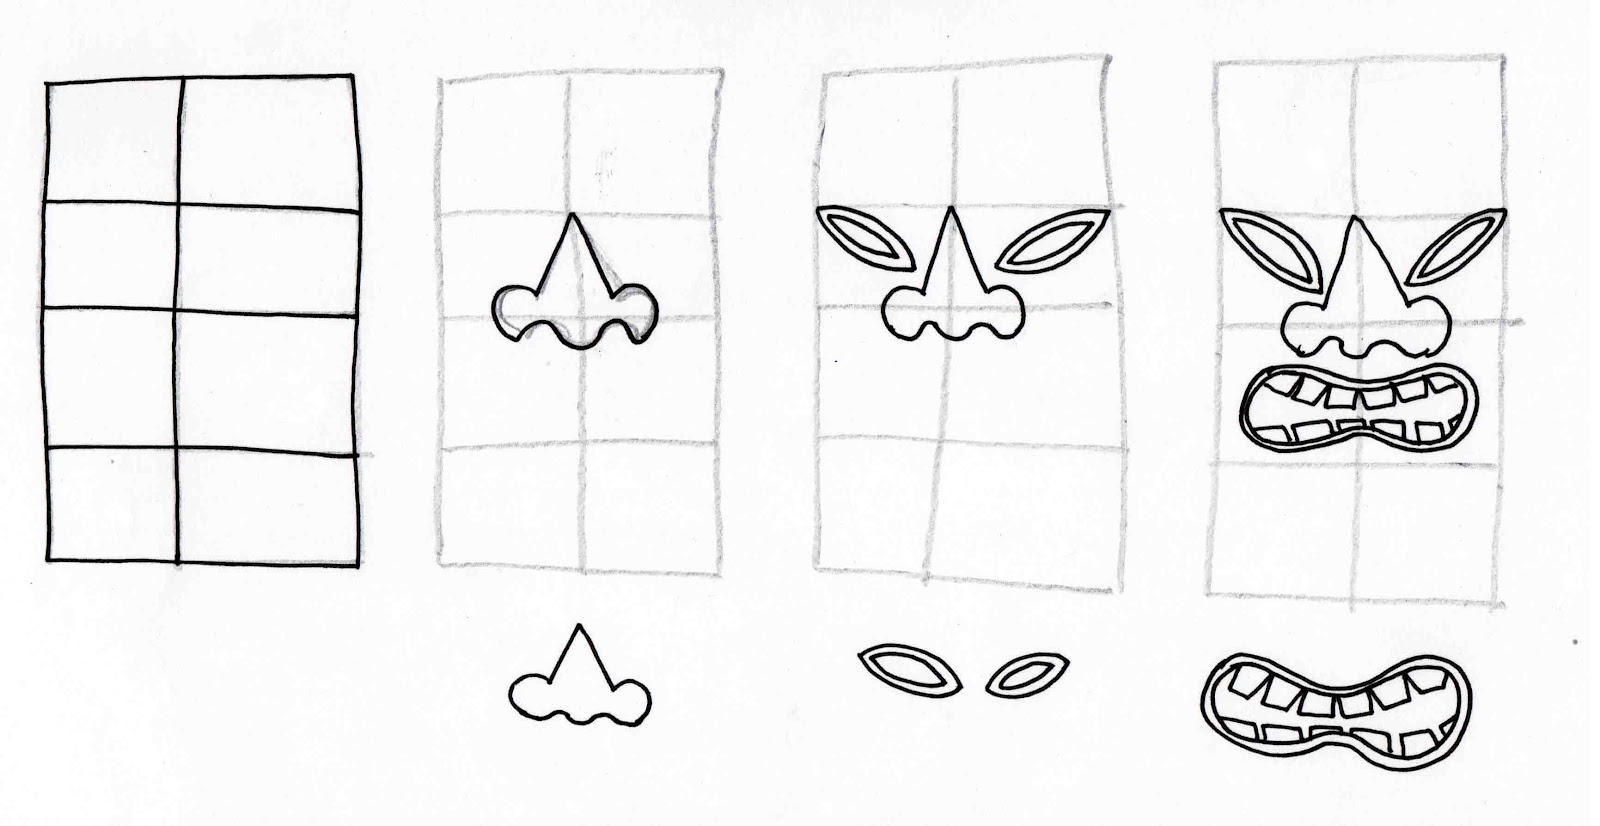 Wooden Tiki Head Drawing Stitchlily: How to dra...